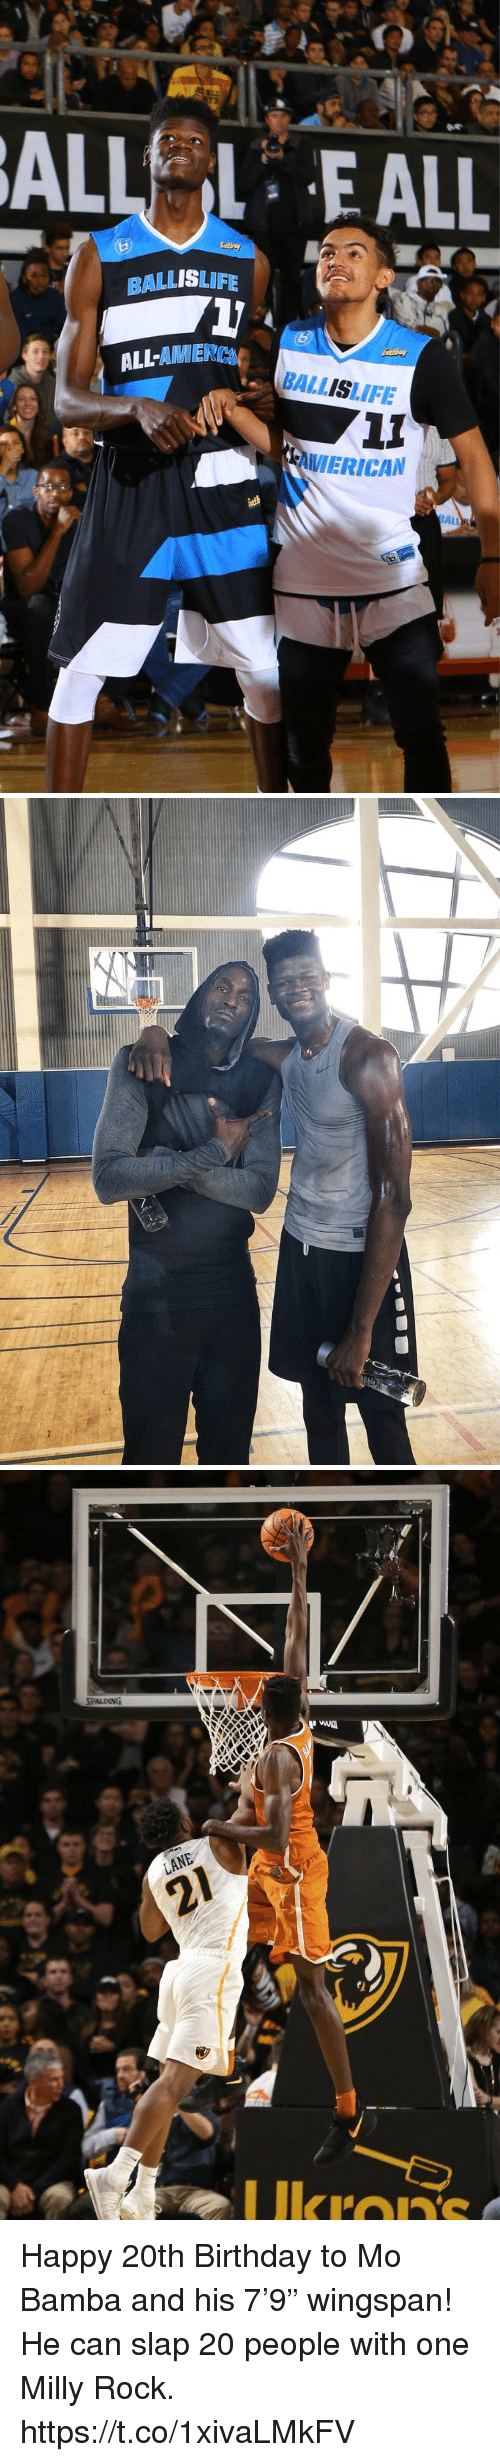 """Birthday, Memes, and Milly Rock: ALLEALL  BALLISLIFE  LL-AMIER  BALLISLIFE  VIERICAN  ALL   Ukron Happy 20th Birthday to Mo Bamba and his 7'9"""" wingspan!  He can slap 20 people with one Milly Rock. https://t.co/1xivaLMkFV"""